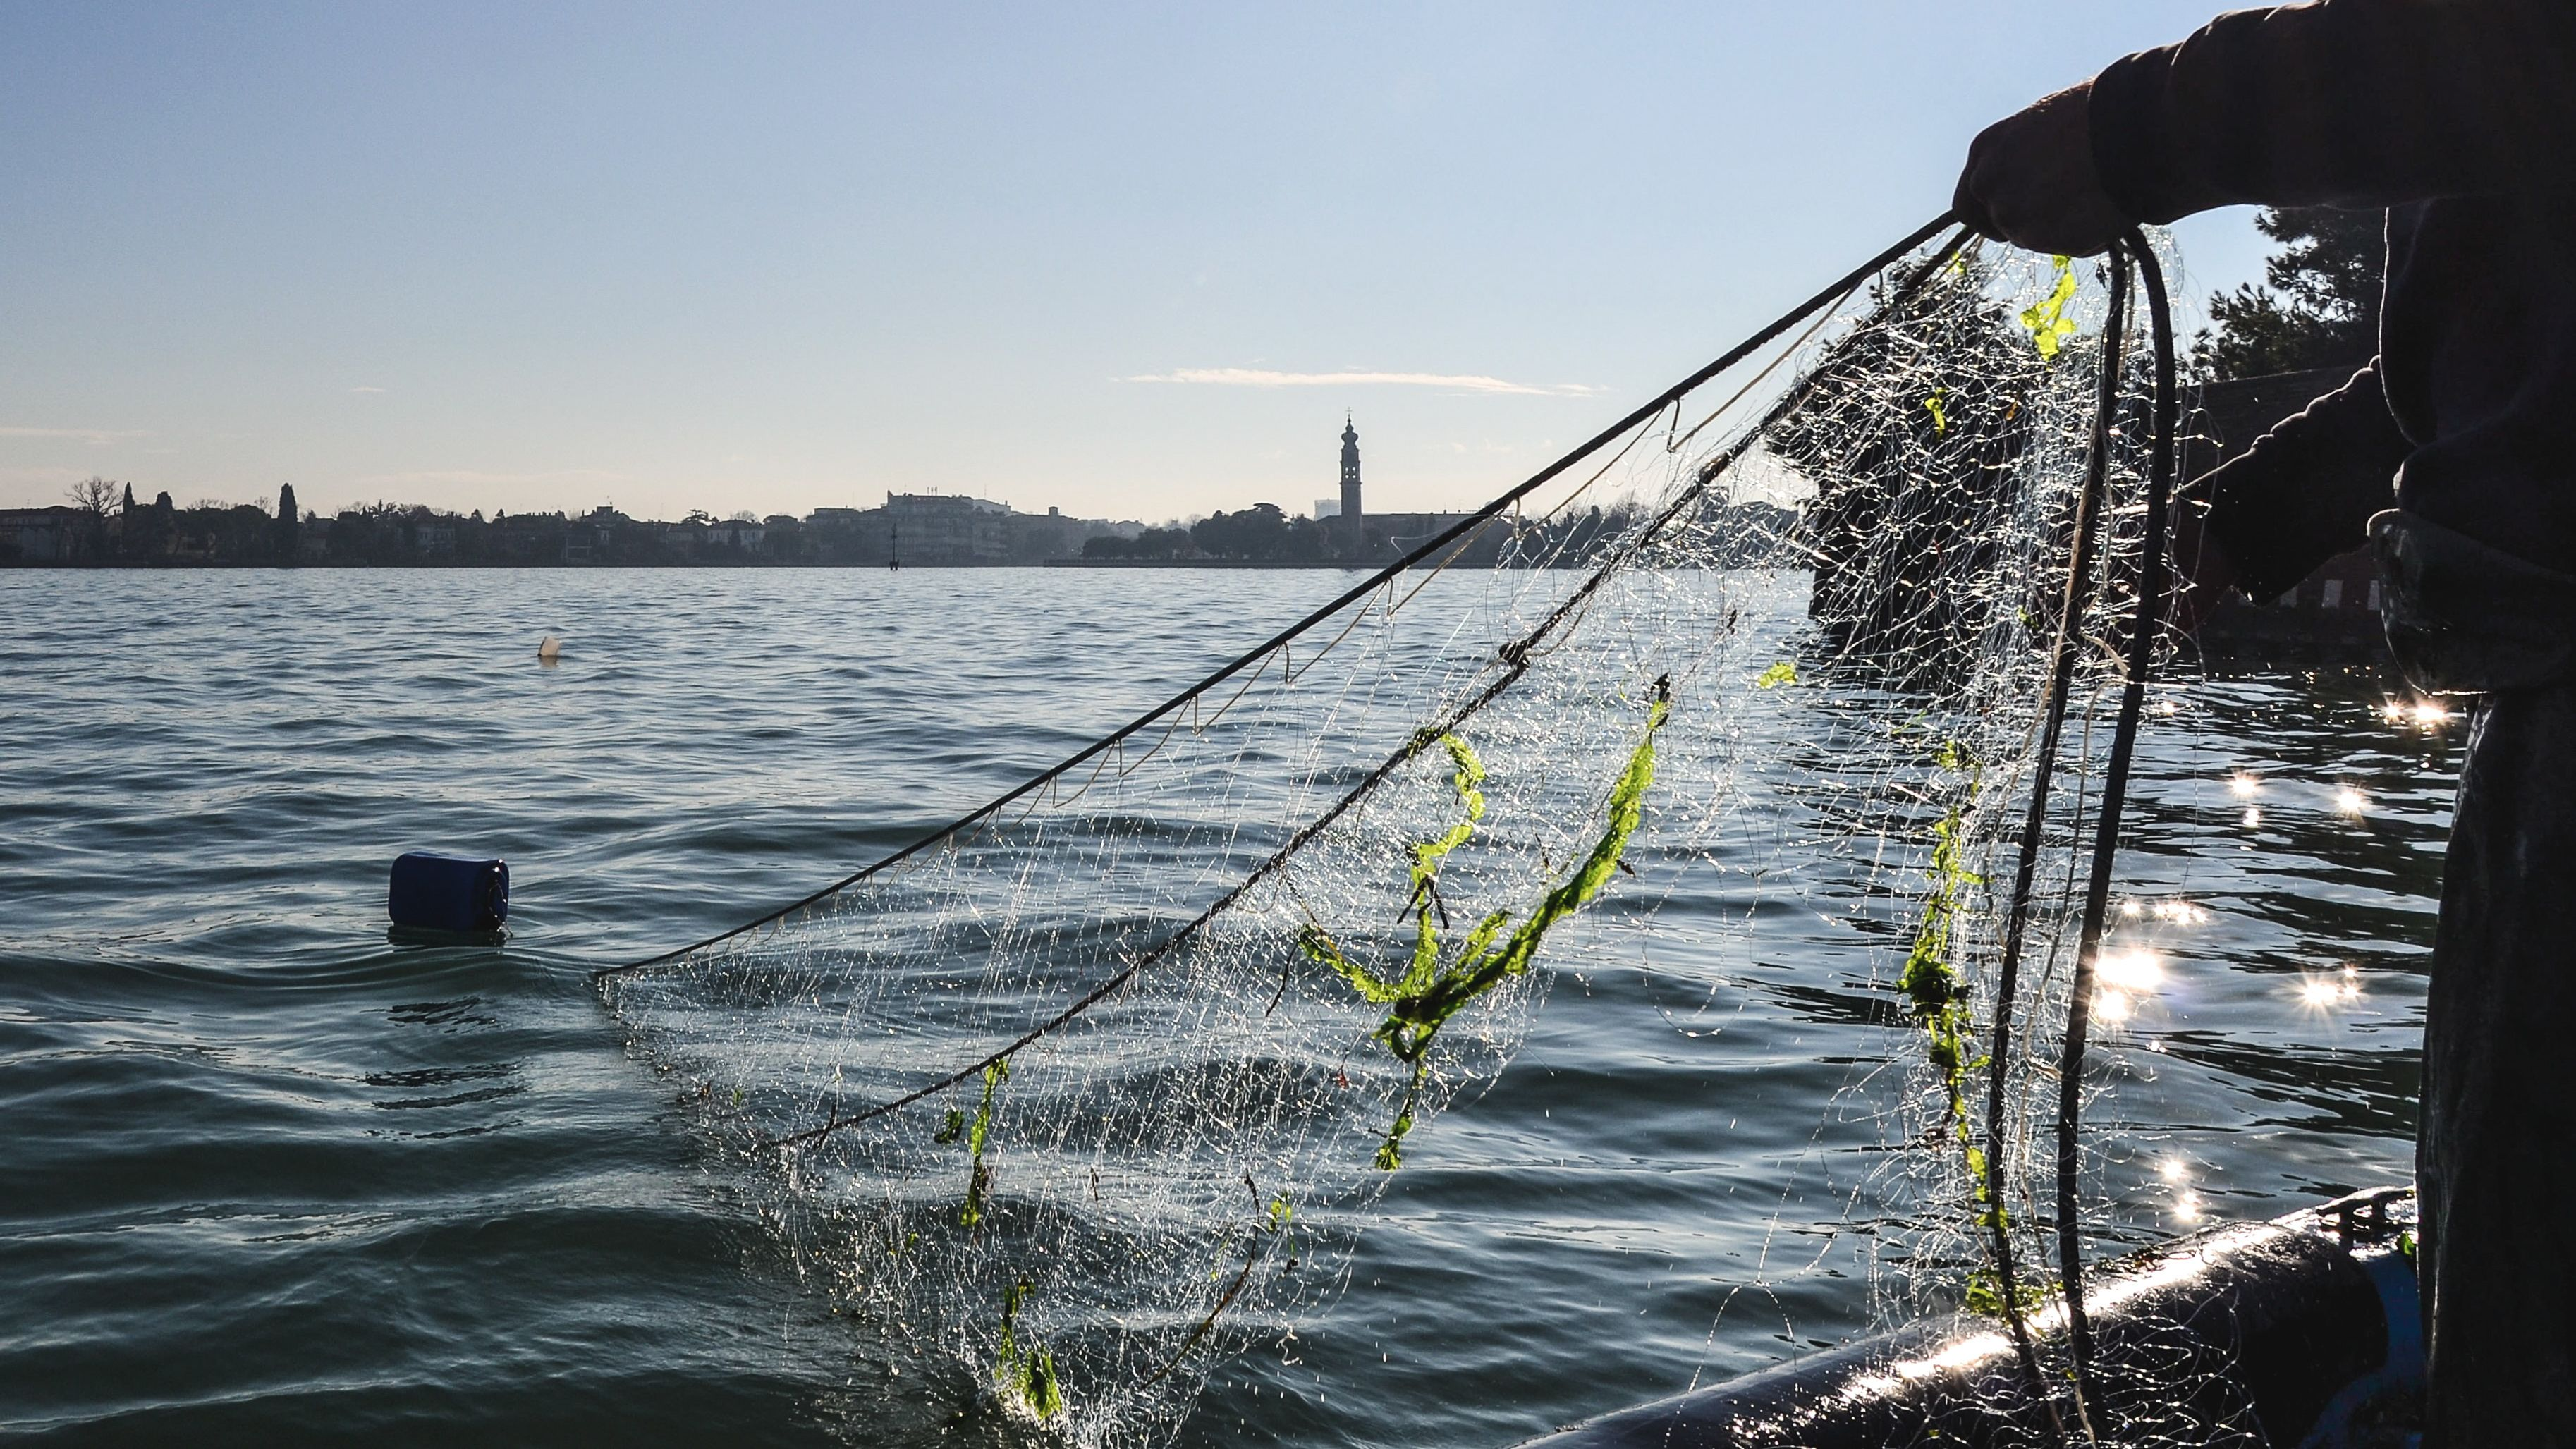 Close up of fishing net being pulled from water.